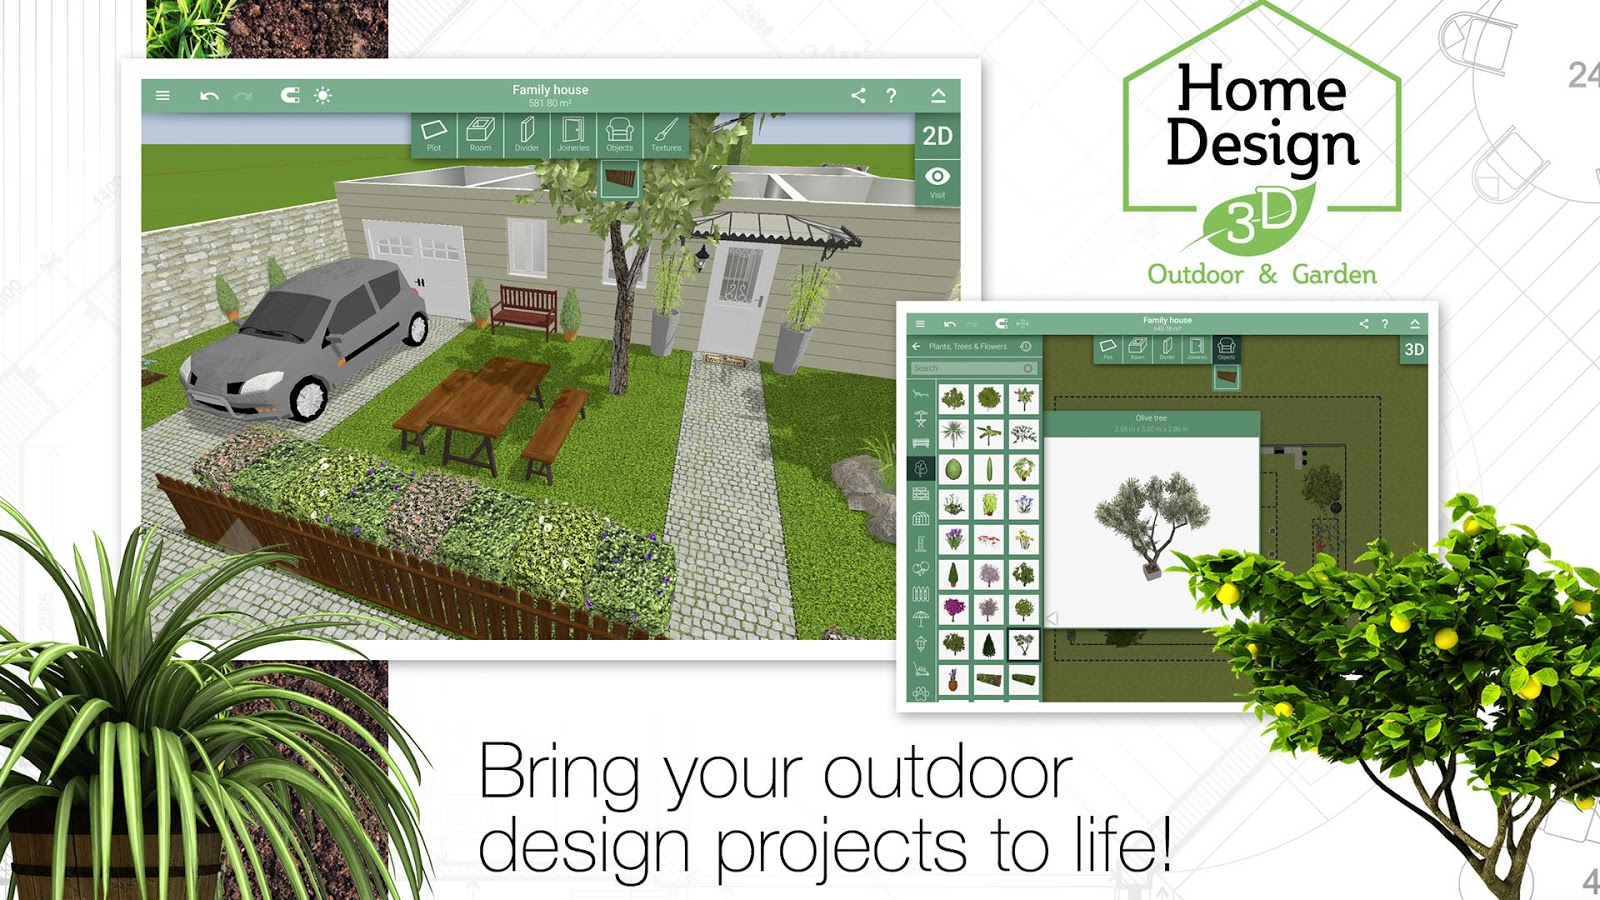 Logo Design Software Free Download Full Version Free Home Design 3d Outdoor Garden 4 8 Apk 43 Obb Data File